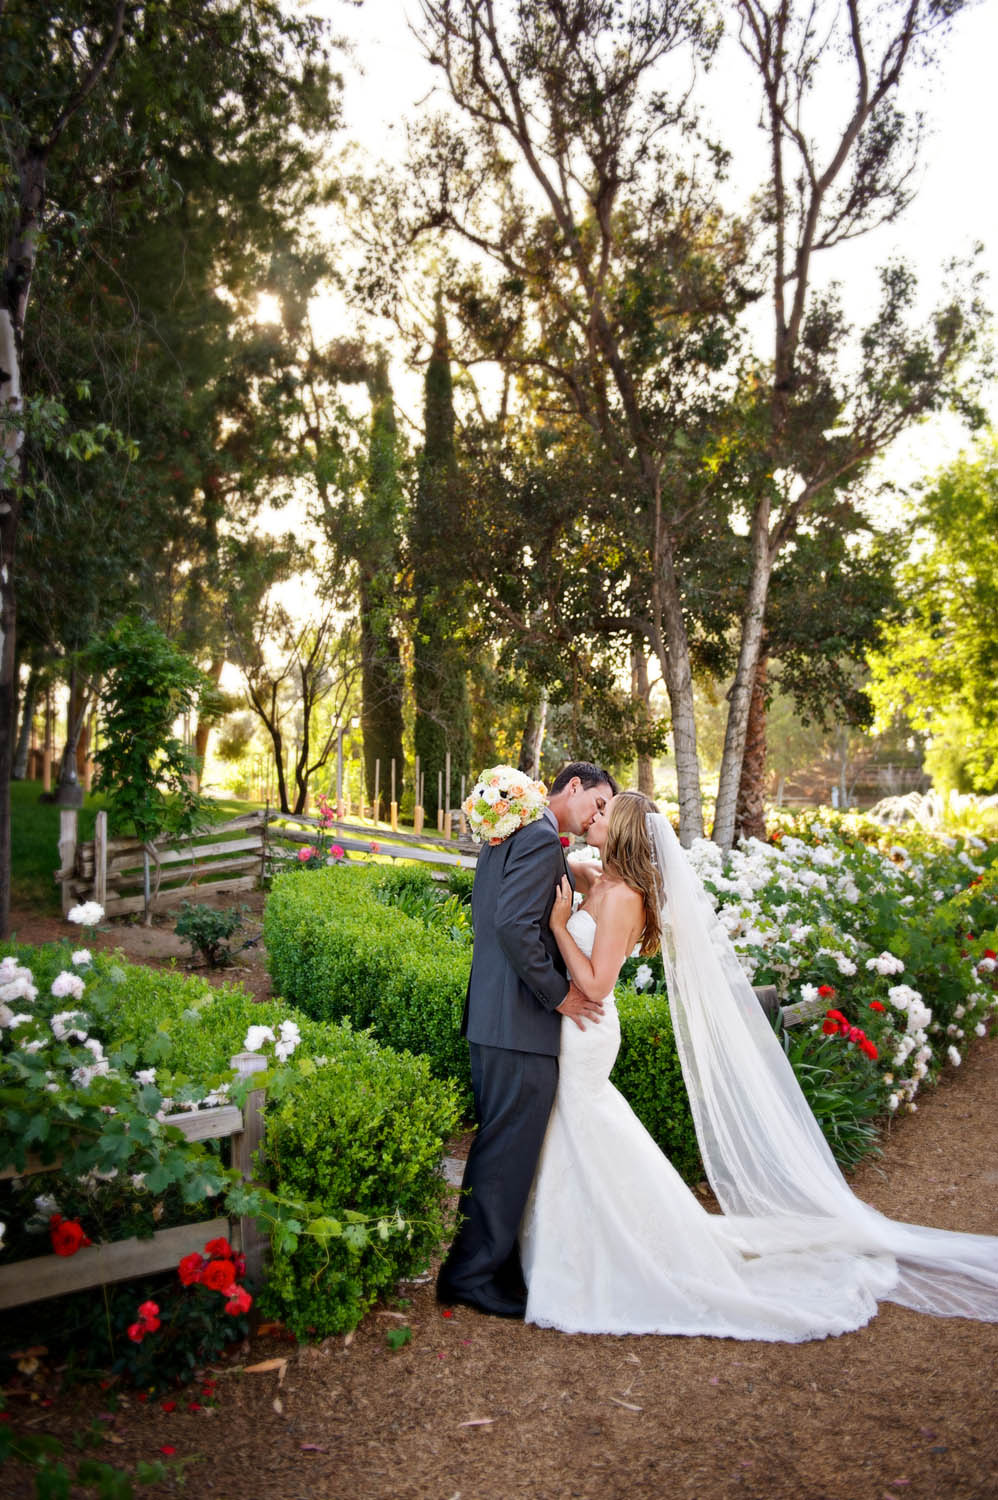 lake-oak-meadows-temecula-weddings-ian-andrew-photography-031.jpg